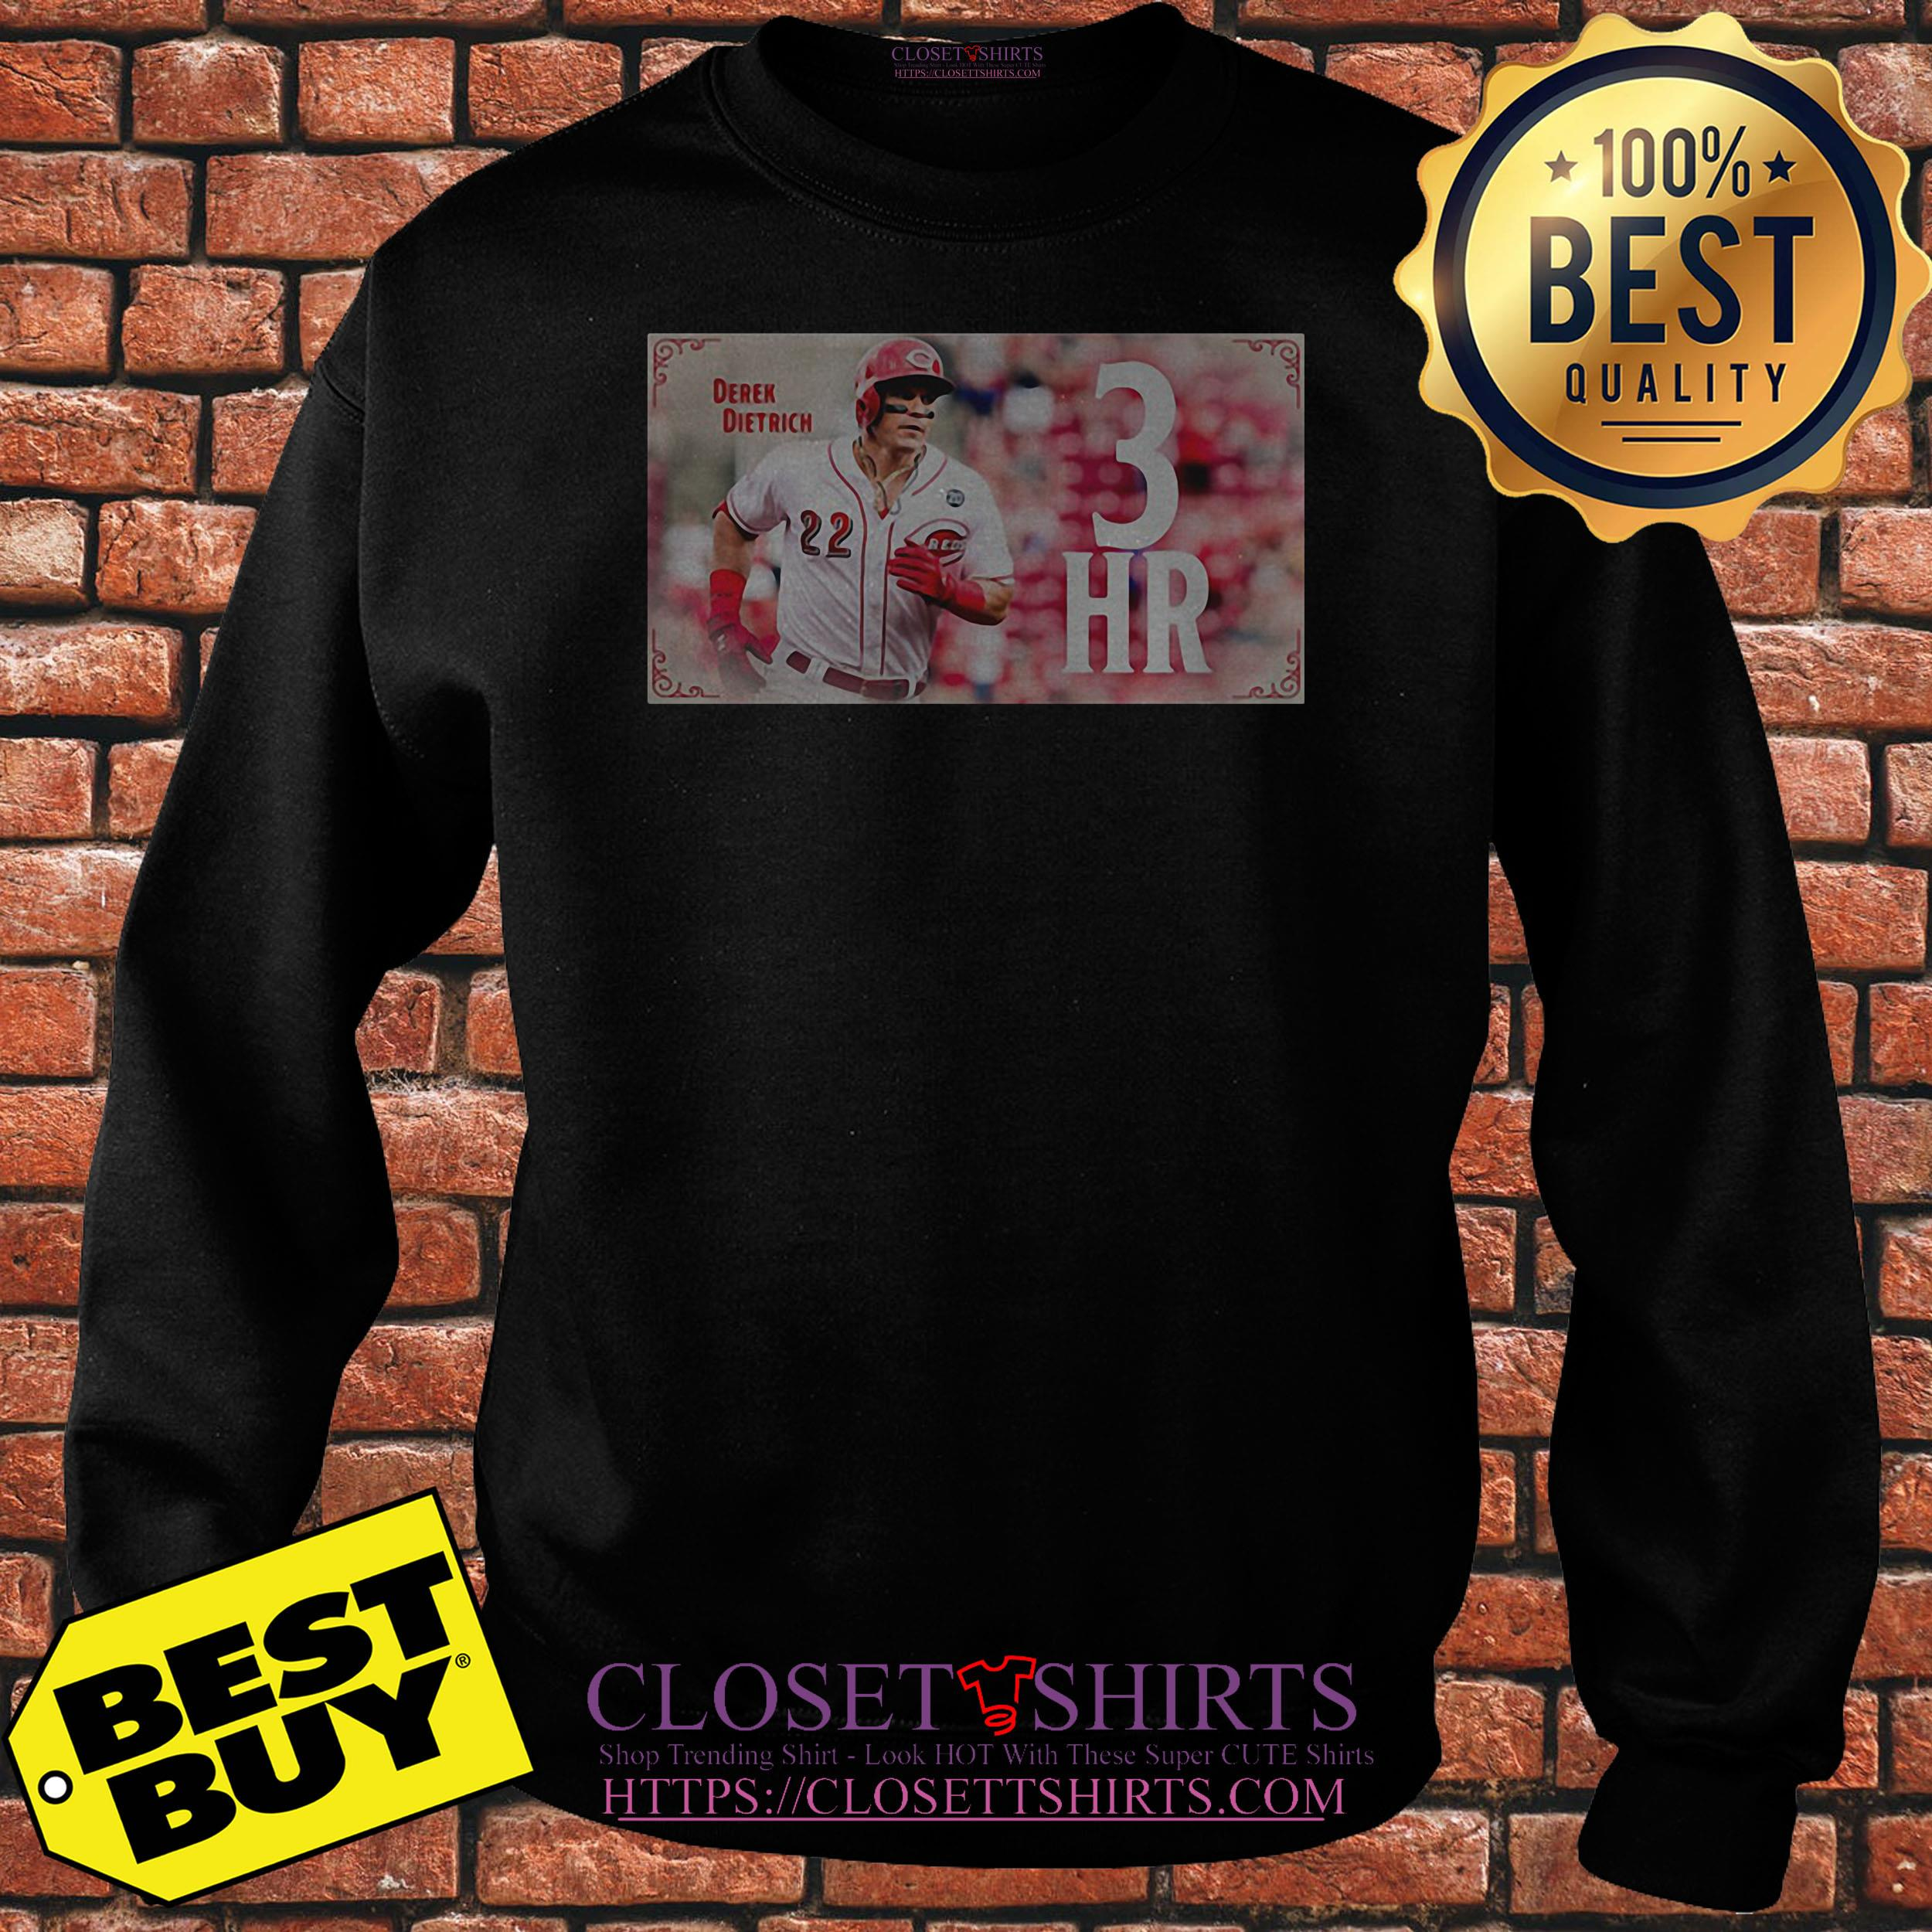 Derek Dietrich 3hr Game Sweatshirt